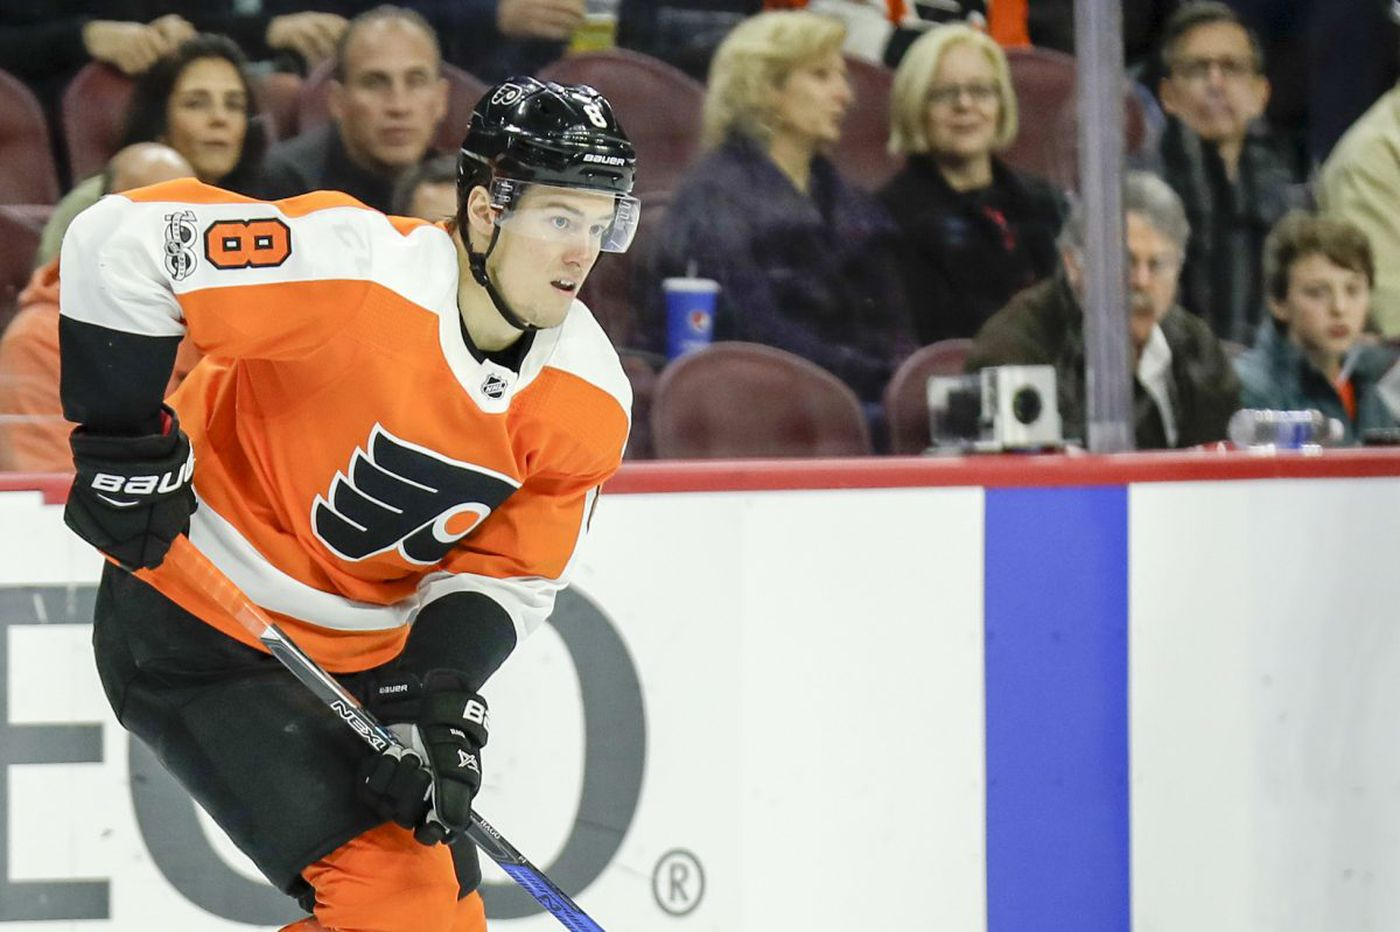 Flyers rookie Robert Hagg showing poise beyond his years